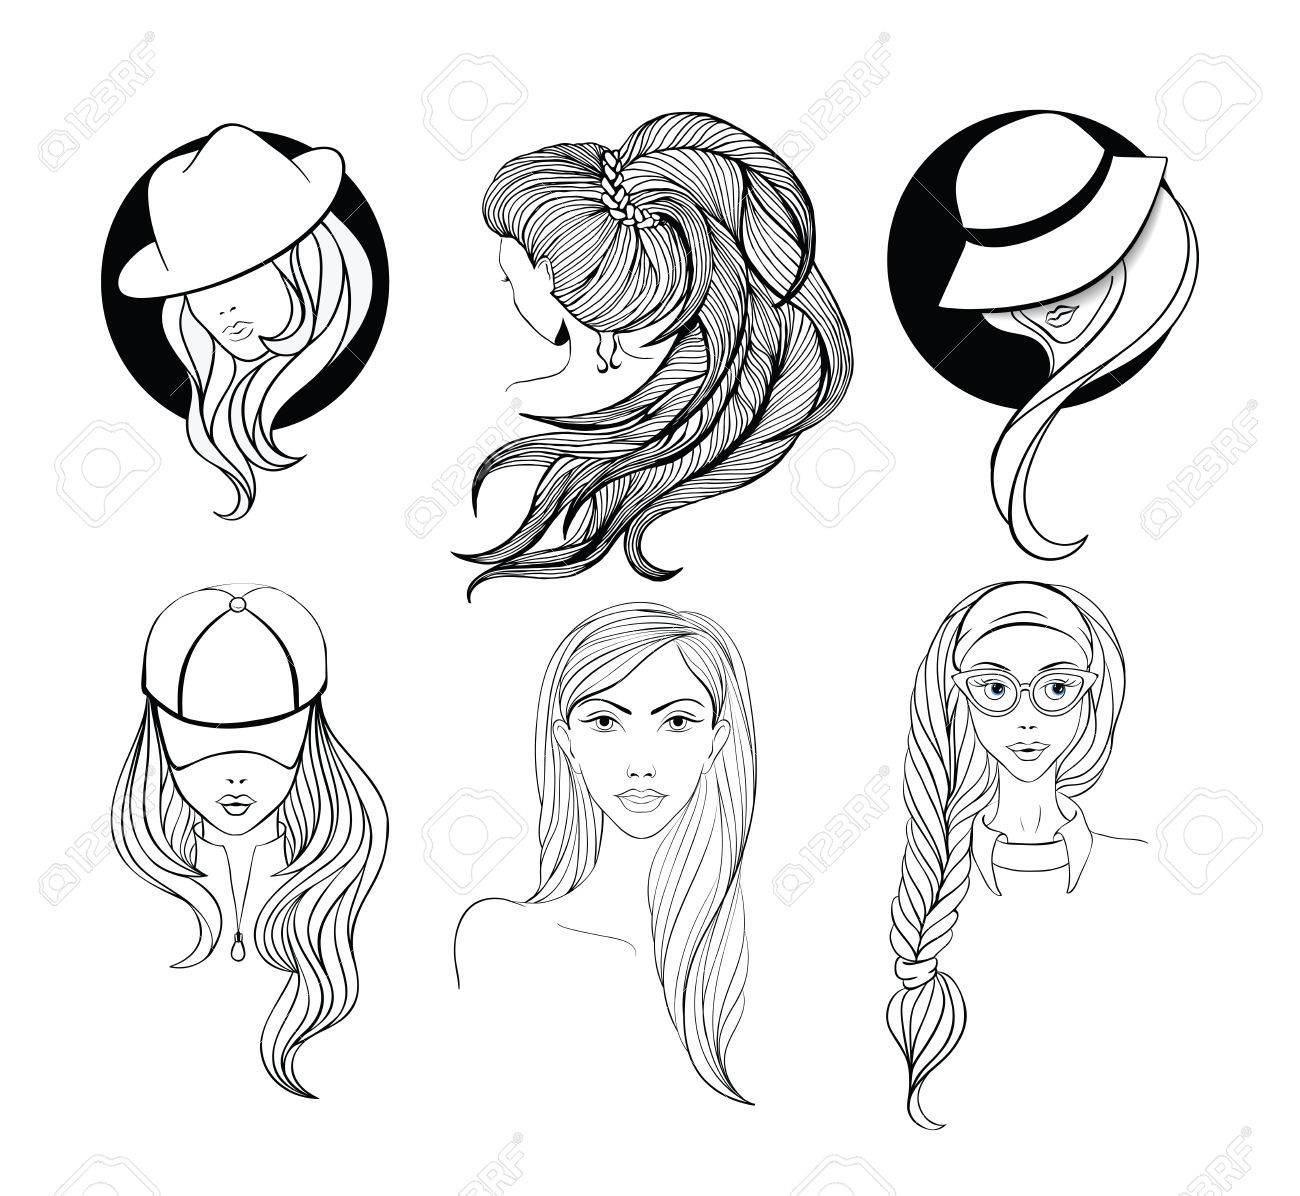 Six Young Girls With Long Hair Made In Sketch Doodling Style